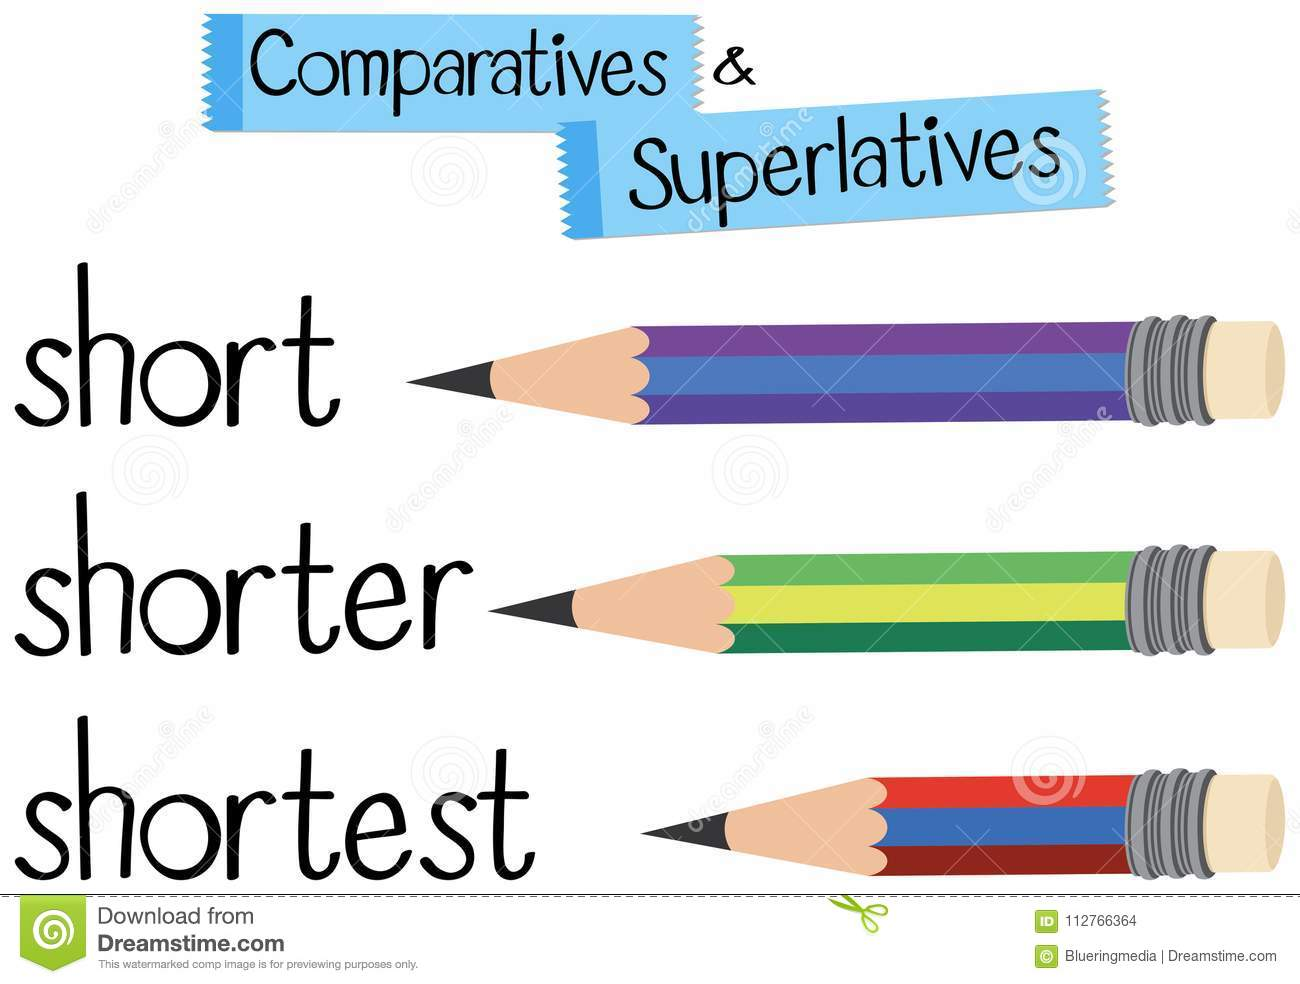 English Grammar For Comparative And Superlative With Word